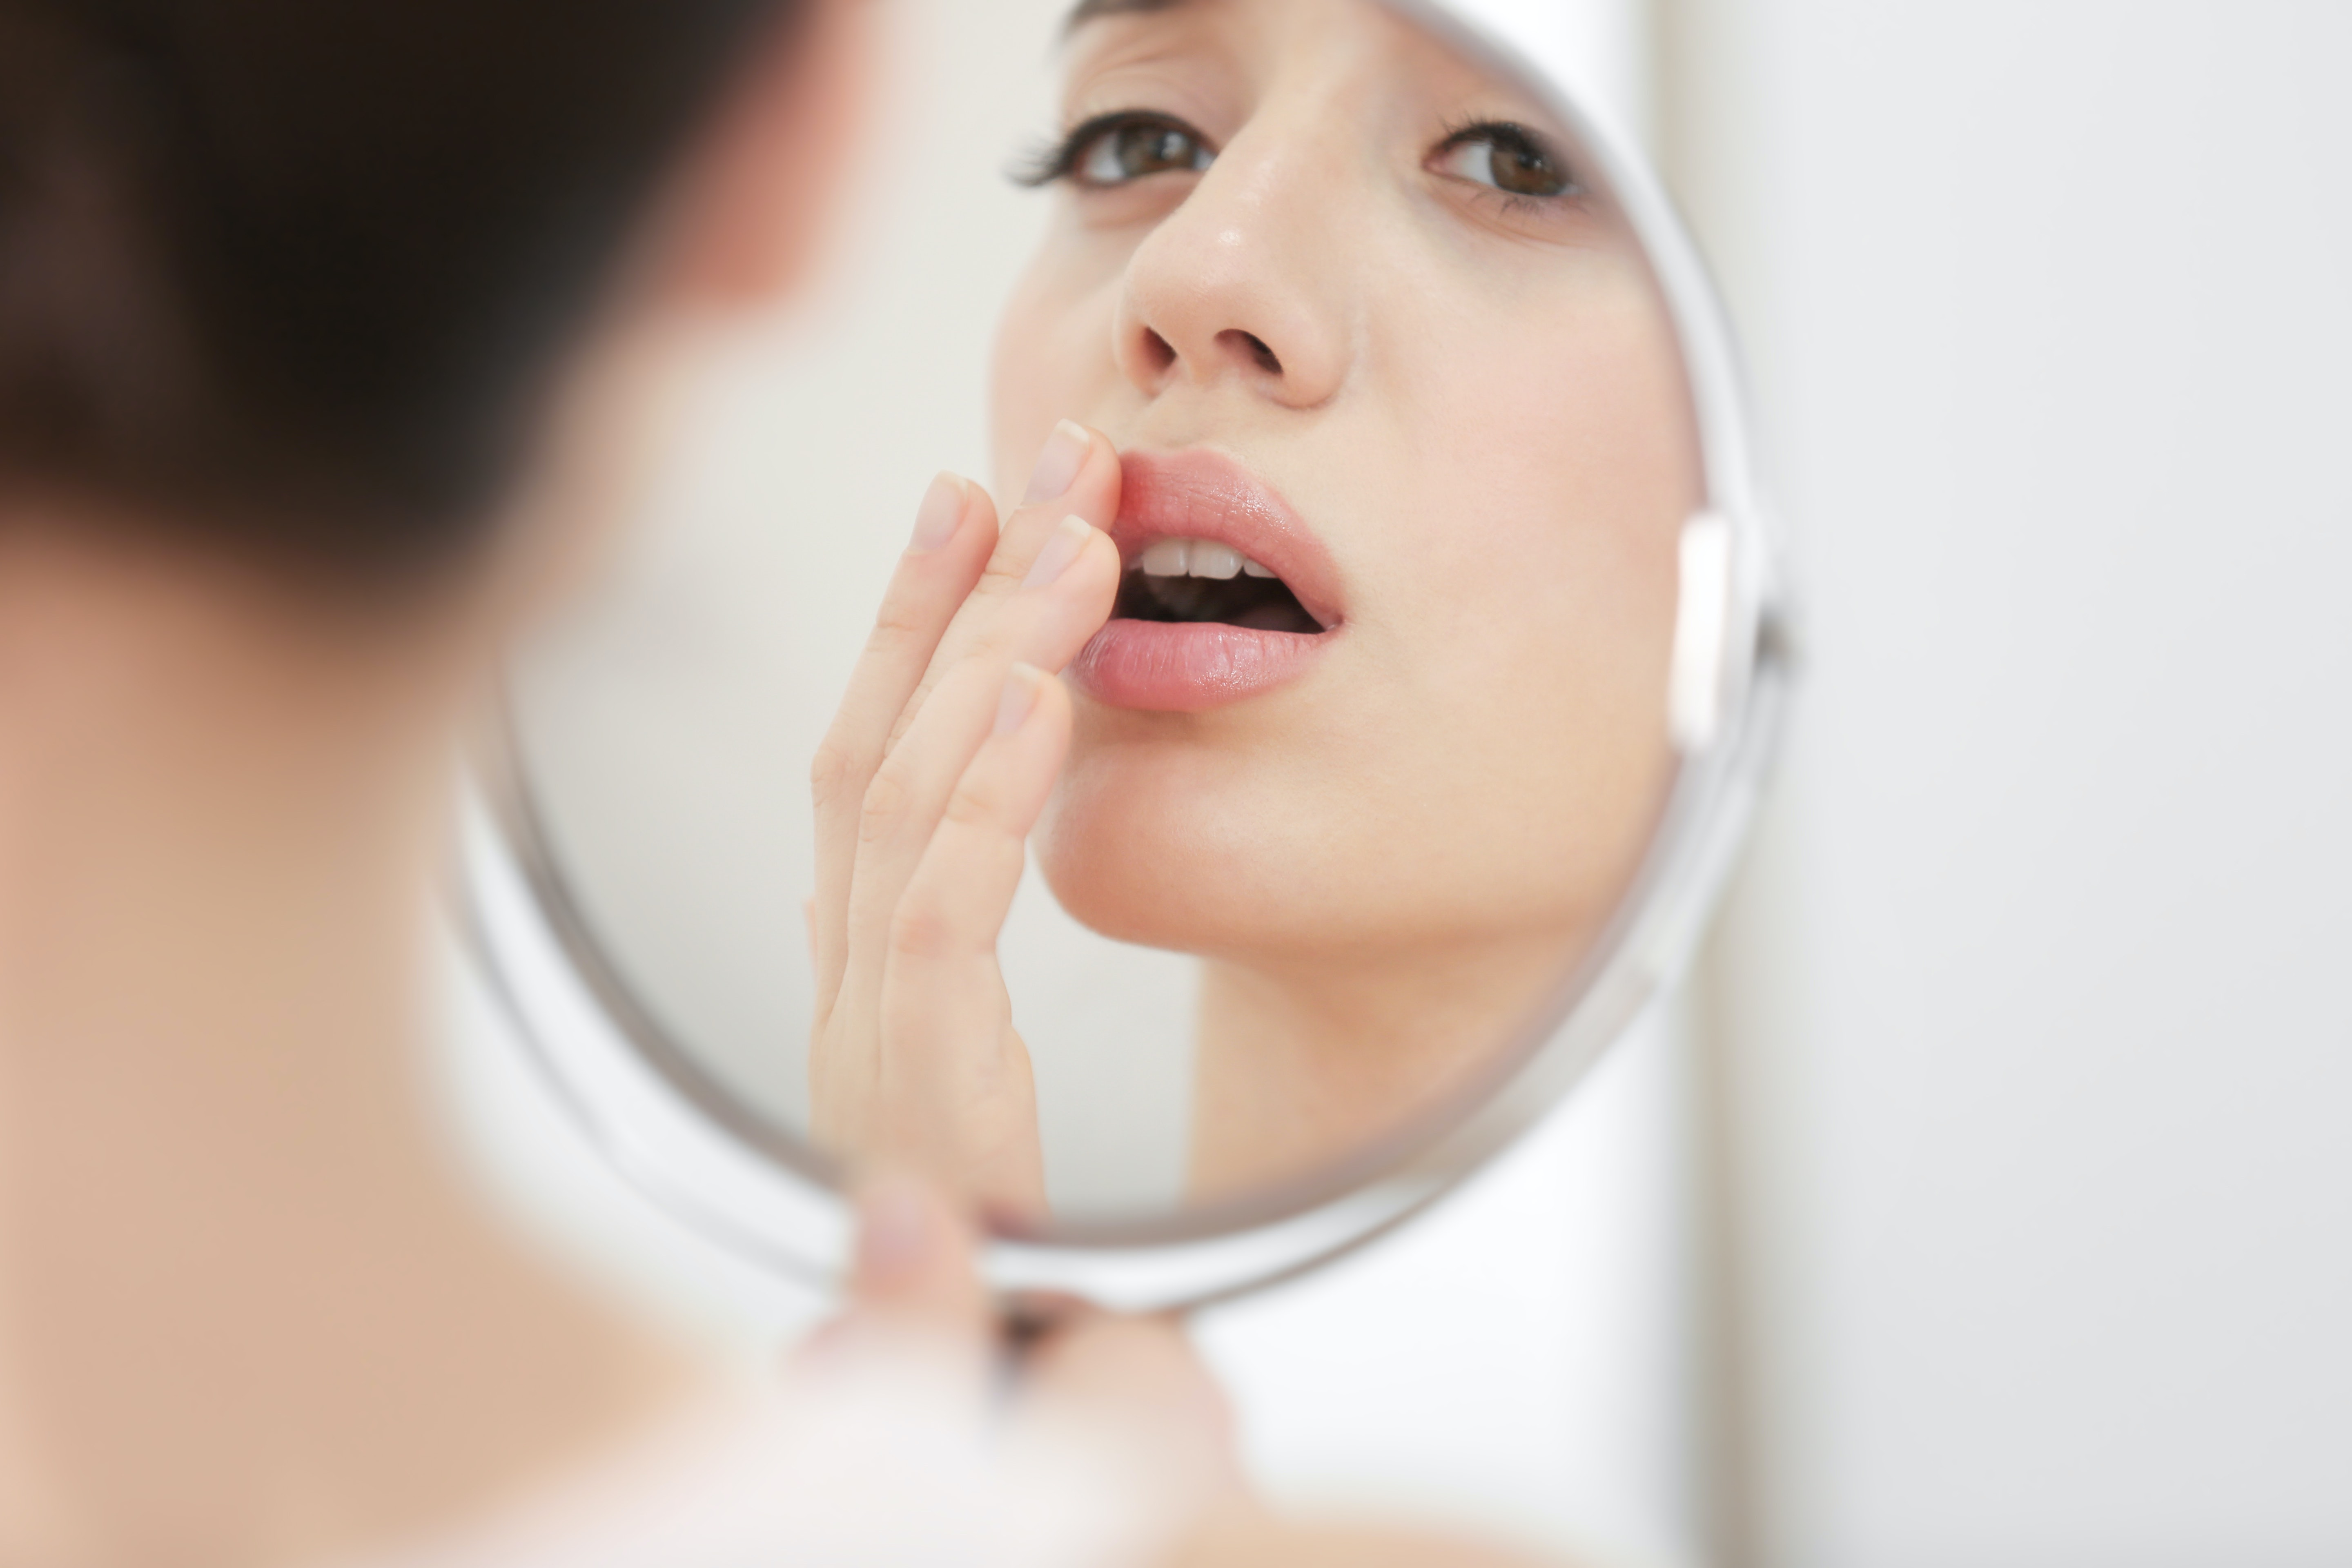 6 Things Your Lips Can Tell You About Your Health